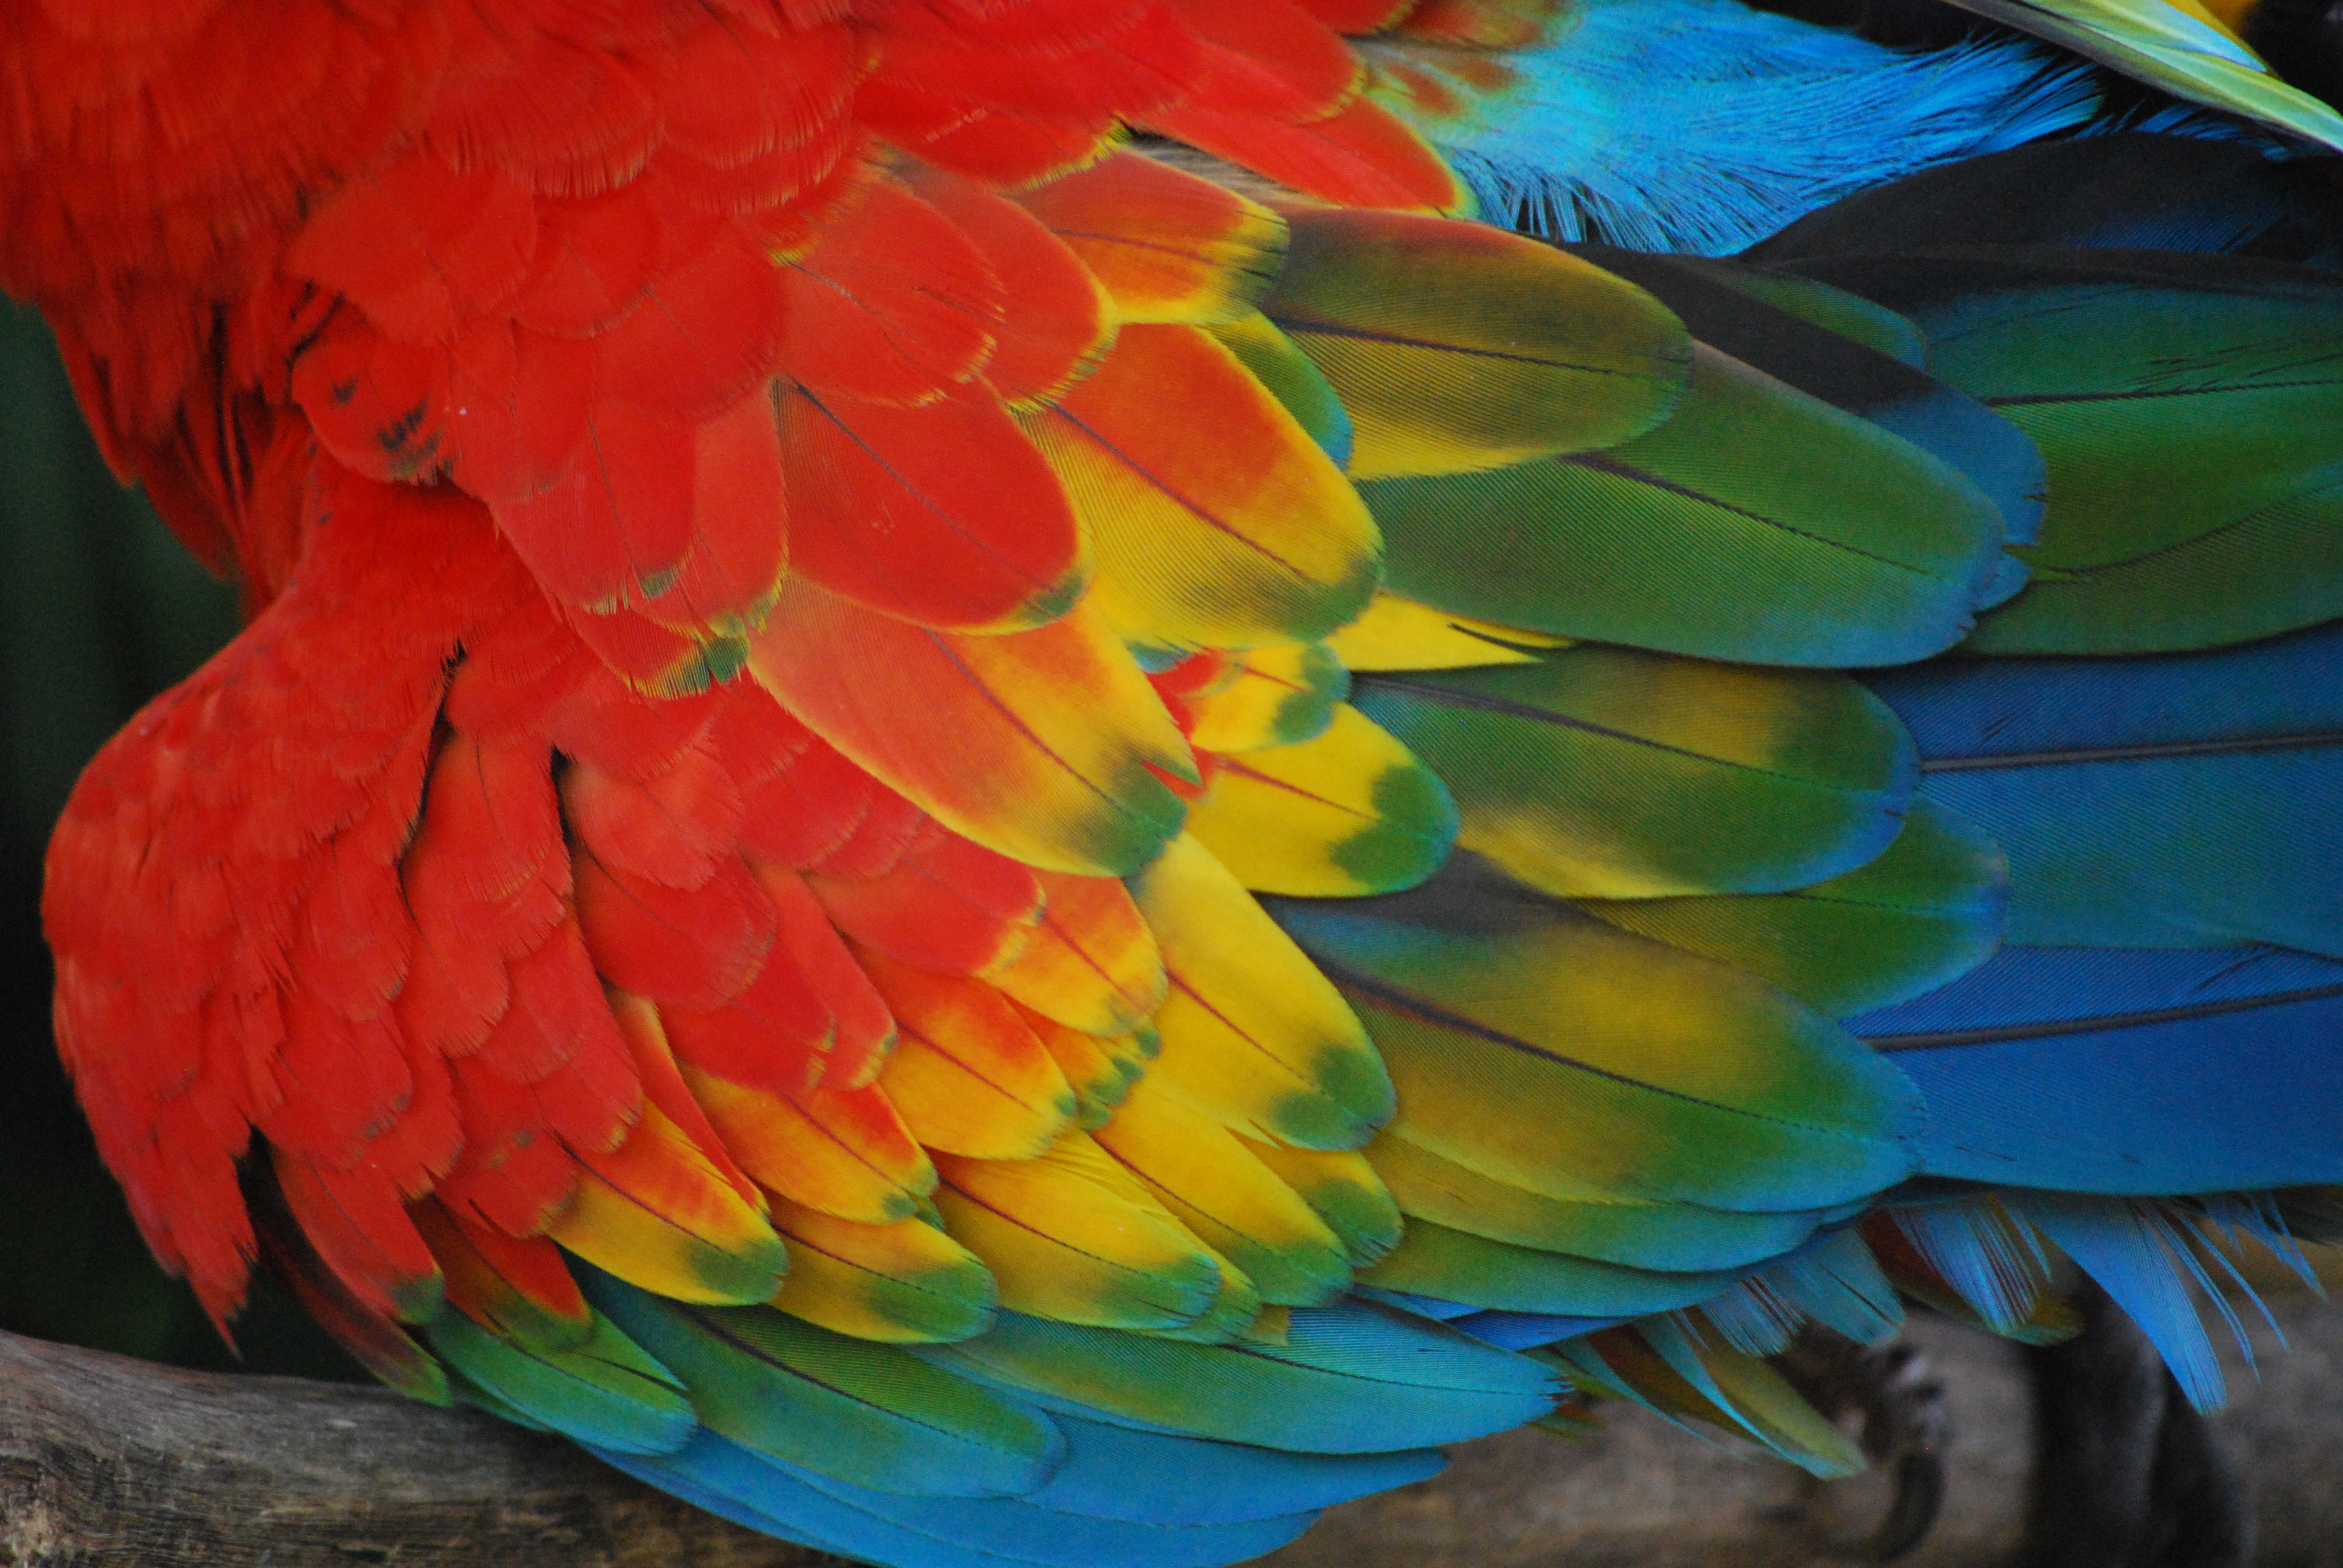 Parrot feathers - photo#1